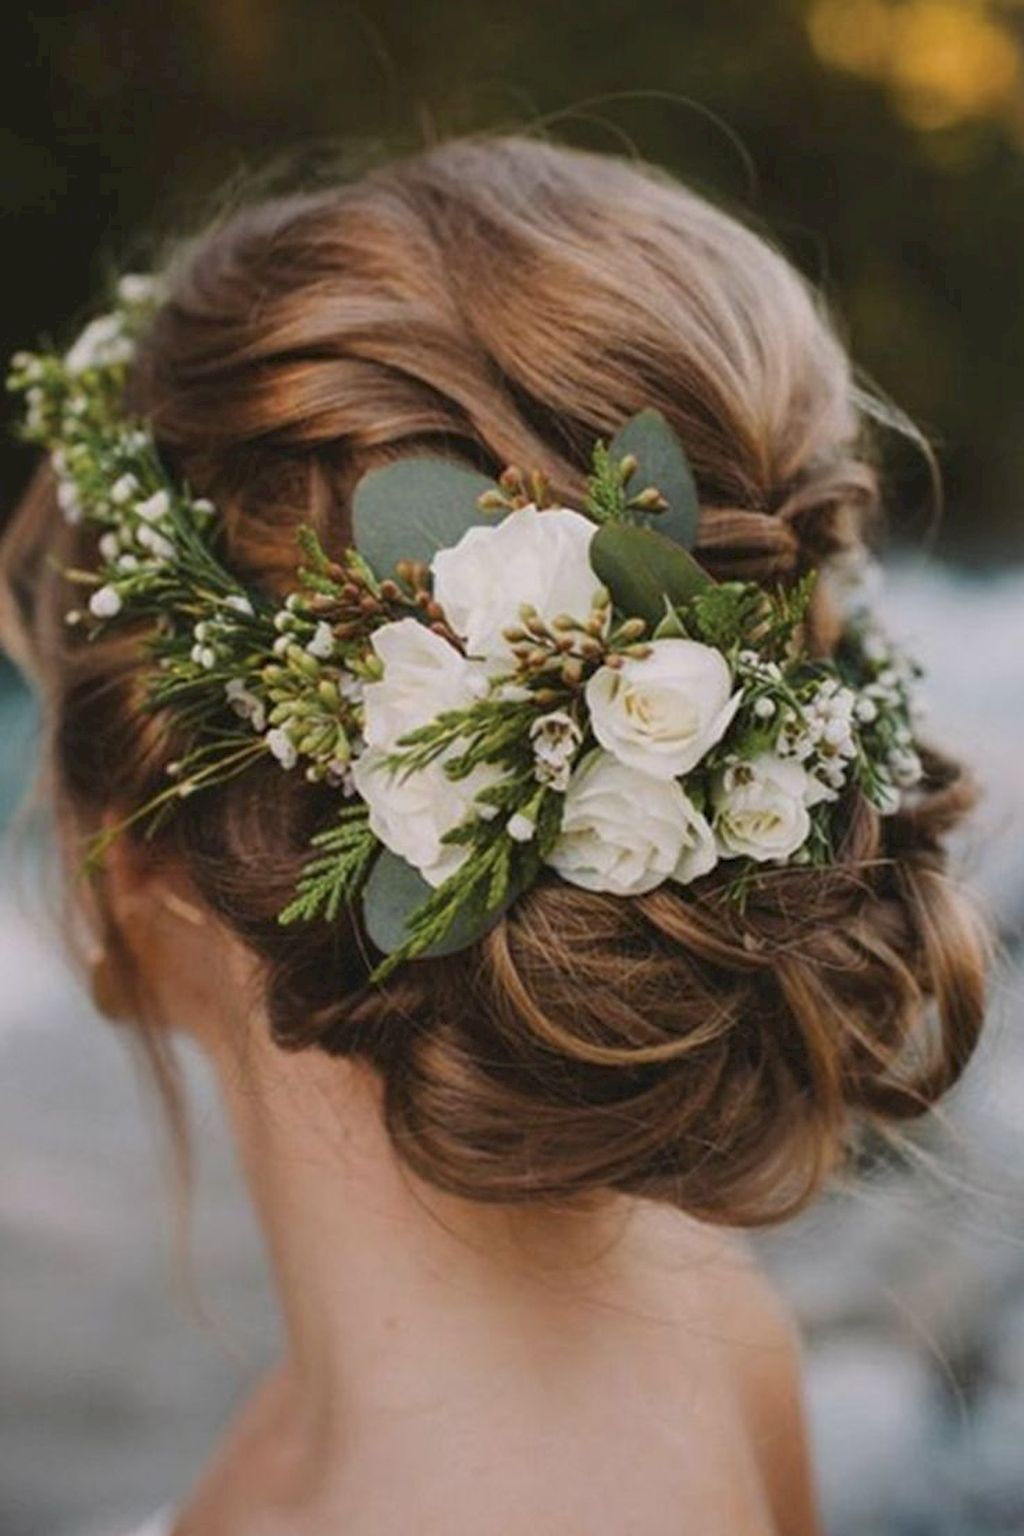 19 Bridal Wedding Hairstyles For Long Hair That Will Inspire Bitecloth Com Winter Wedding Hair Flower Crown Hairstyle Flowers In Hair